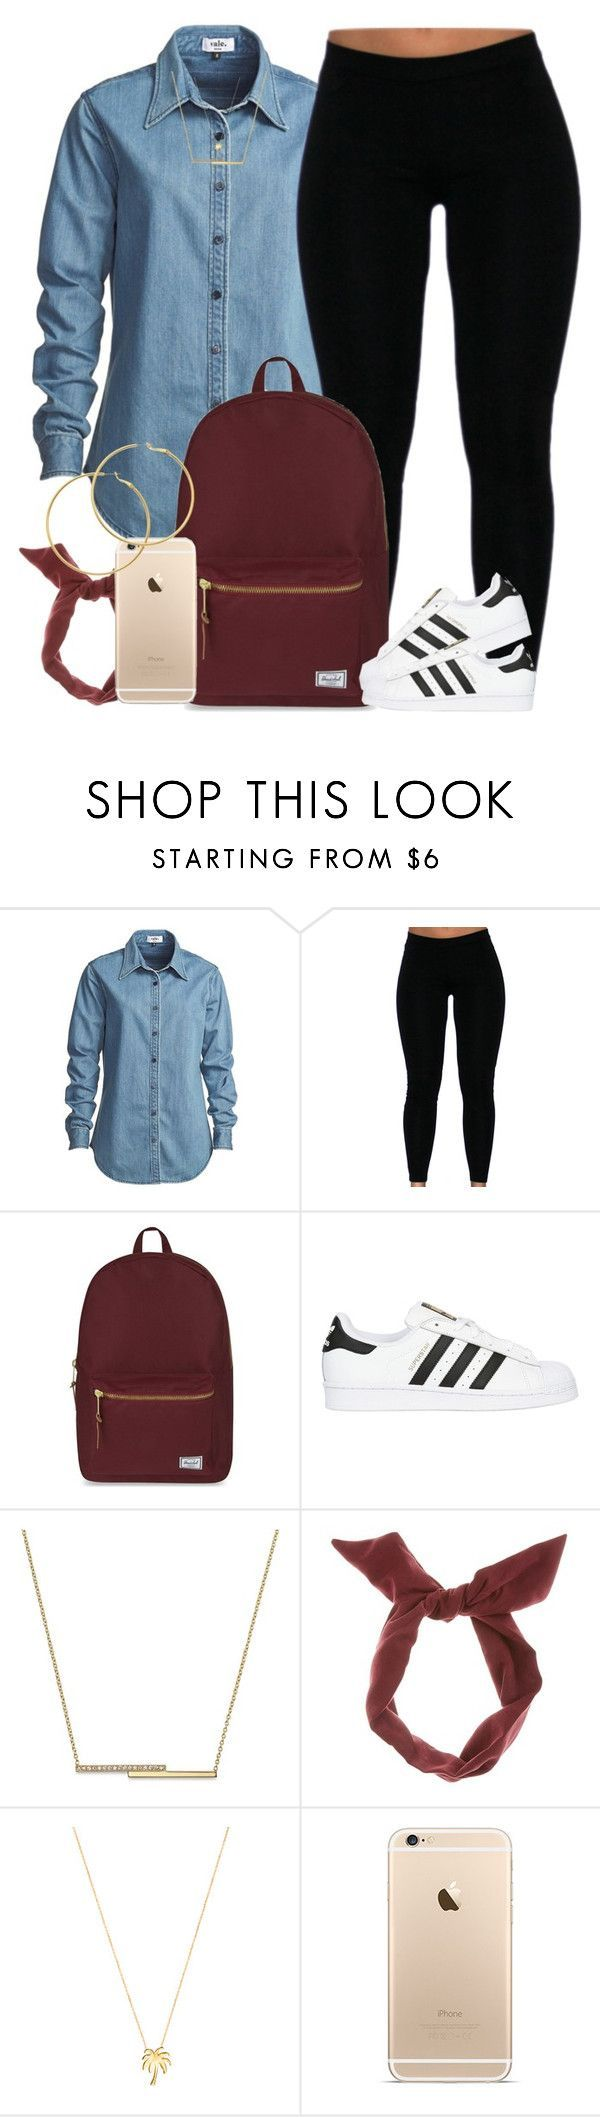 """""""Ehh simple."""" by livelifefreelyy ❤ liked on Polyvore featuring Vale, Herschel Supply Co., adidas Originals, ZoÃ« Chicco, Joolz by Martha Calvo and Melissa Odabash"""